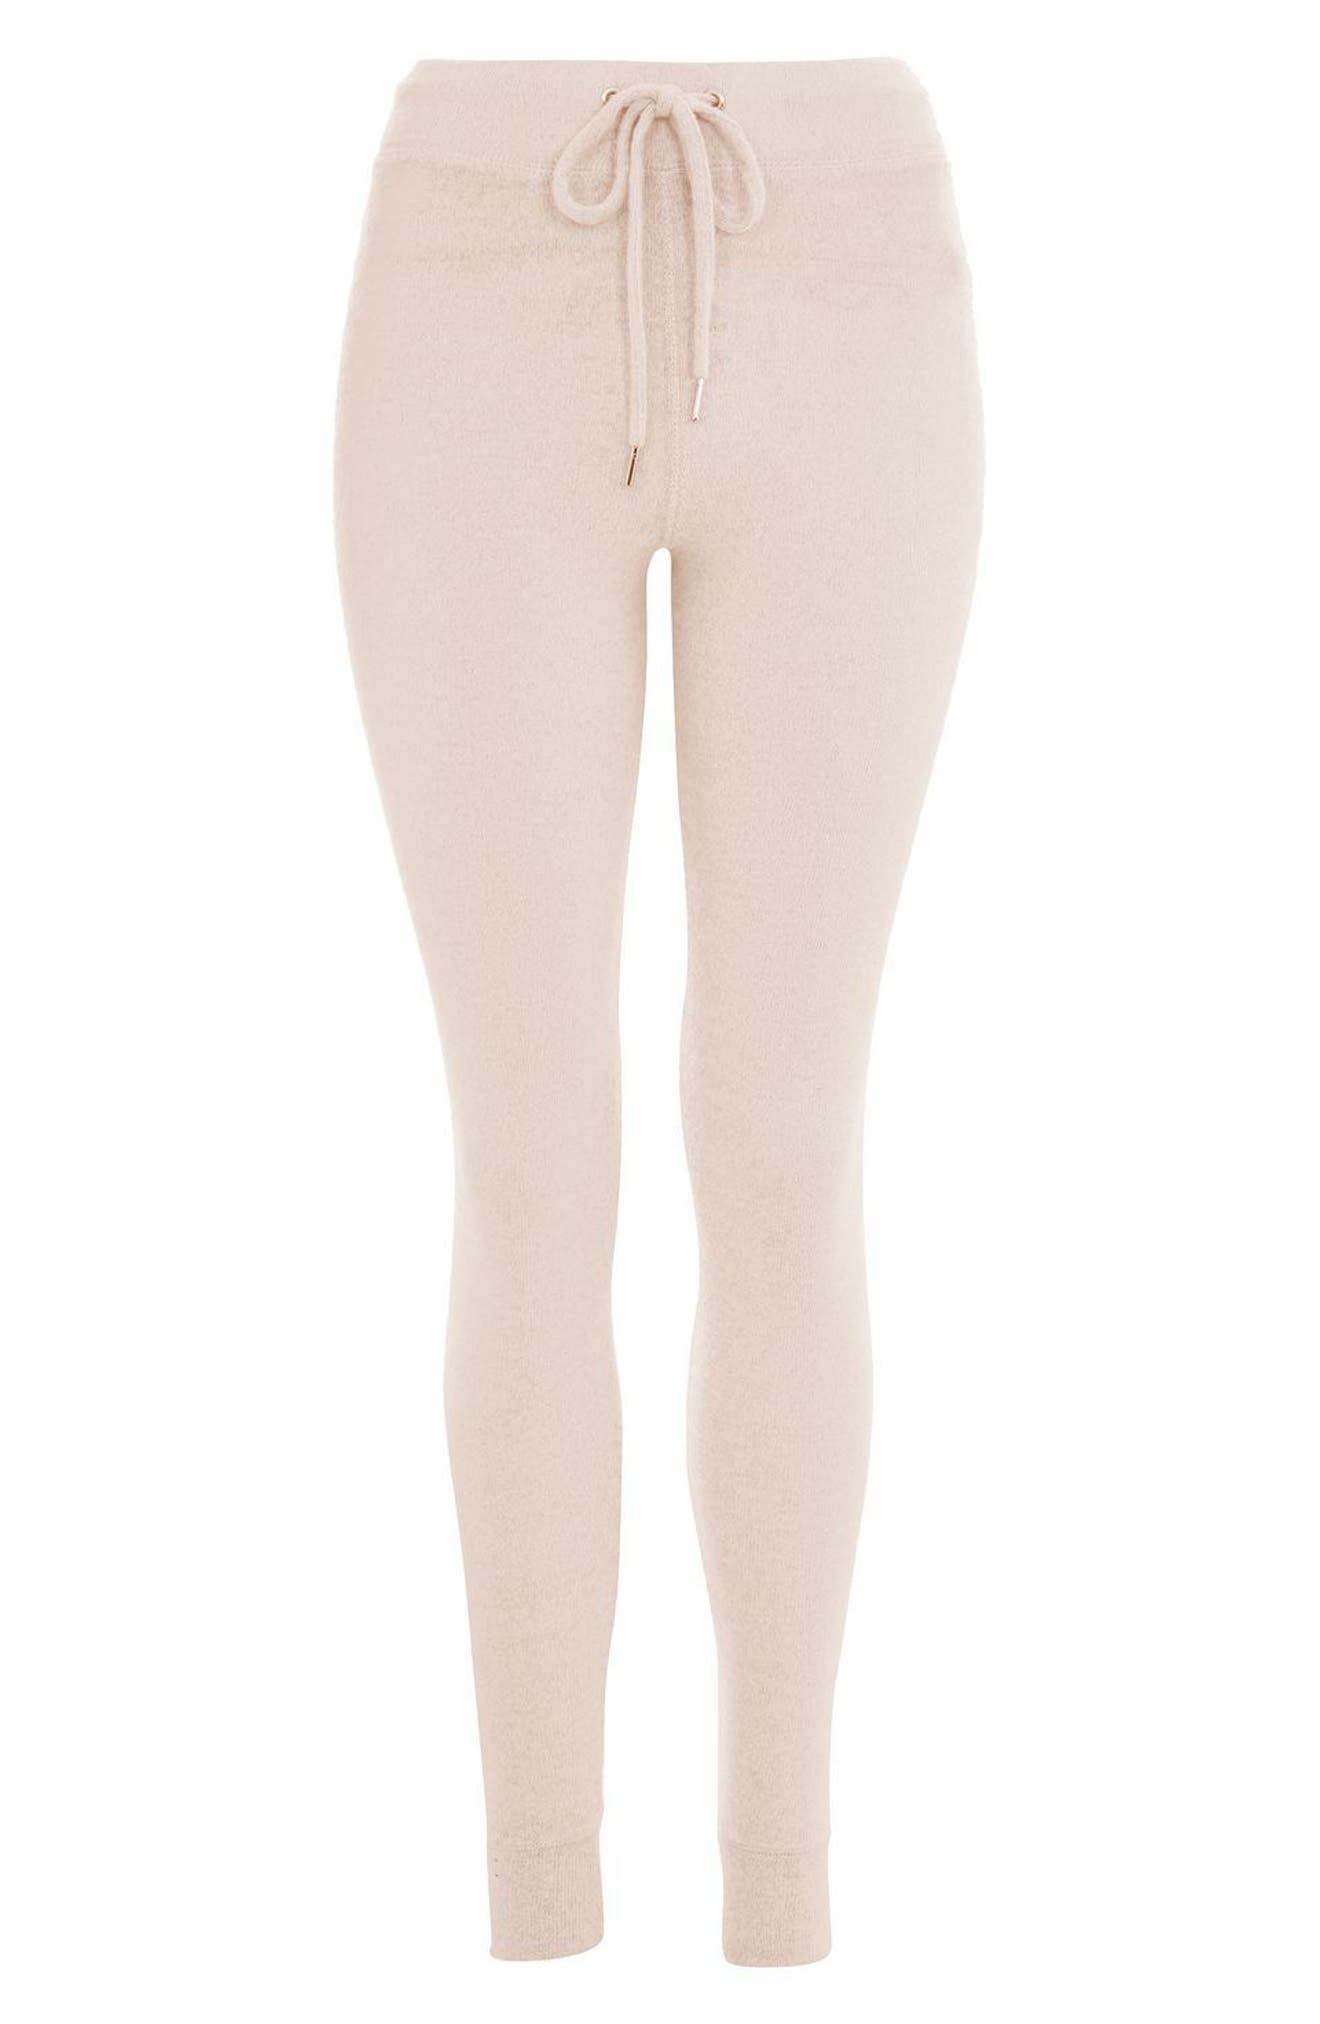 Skinny Jogger Pants,                             Alternate thumbnail 3, color,                             Light Pink